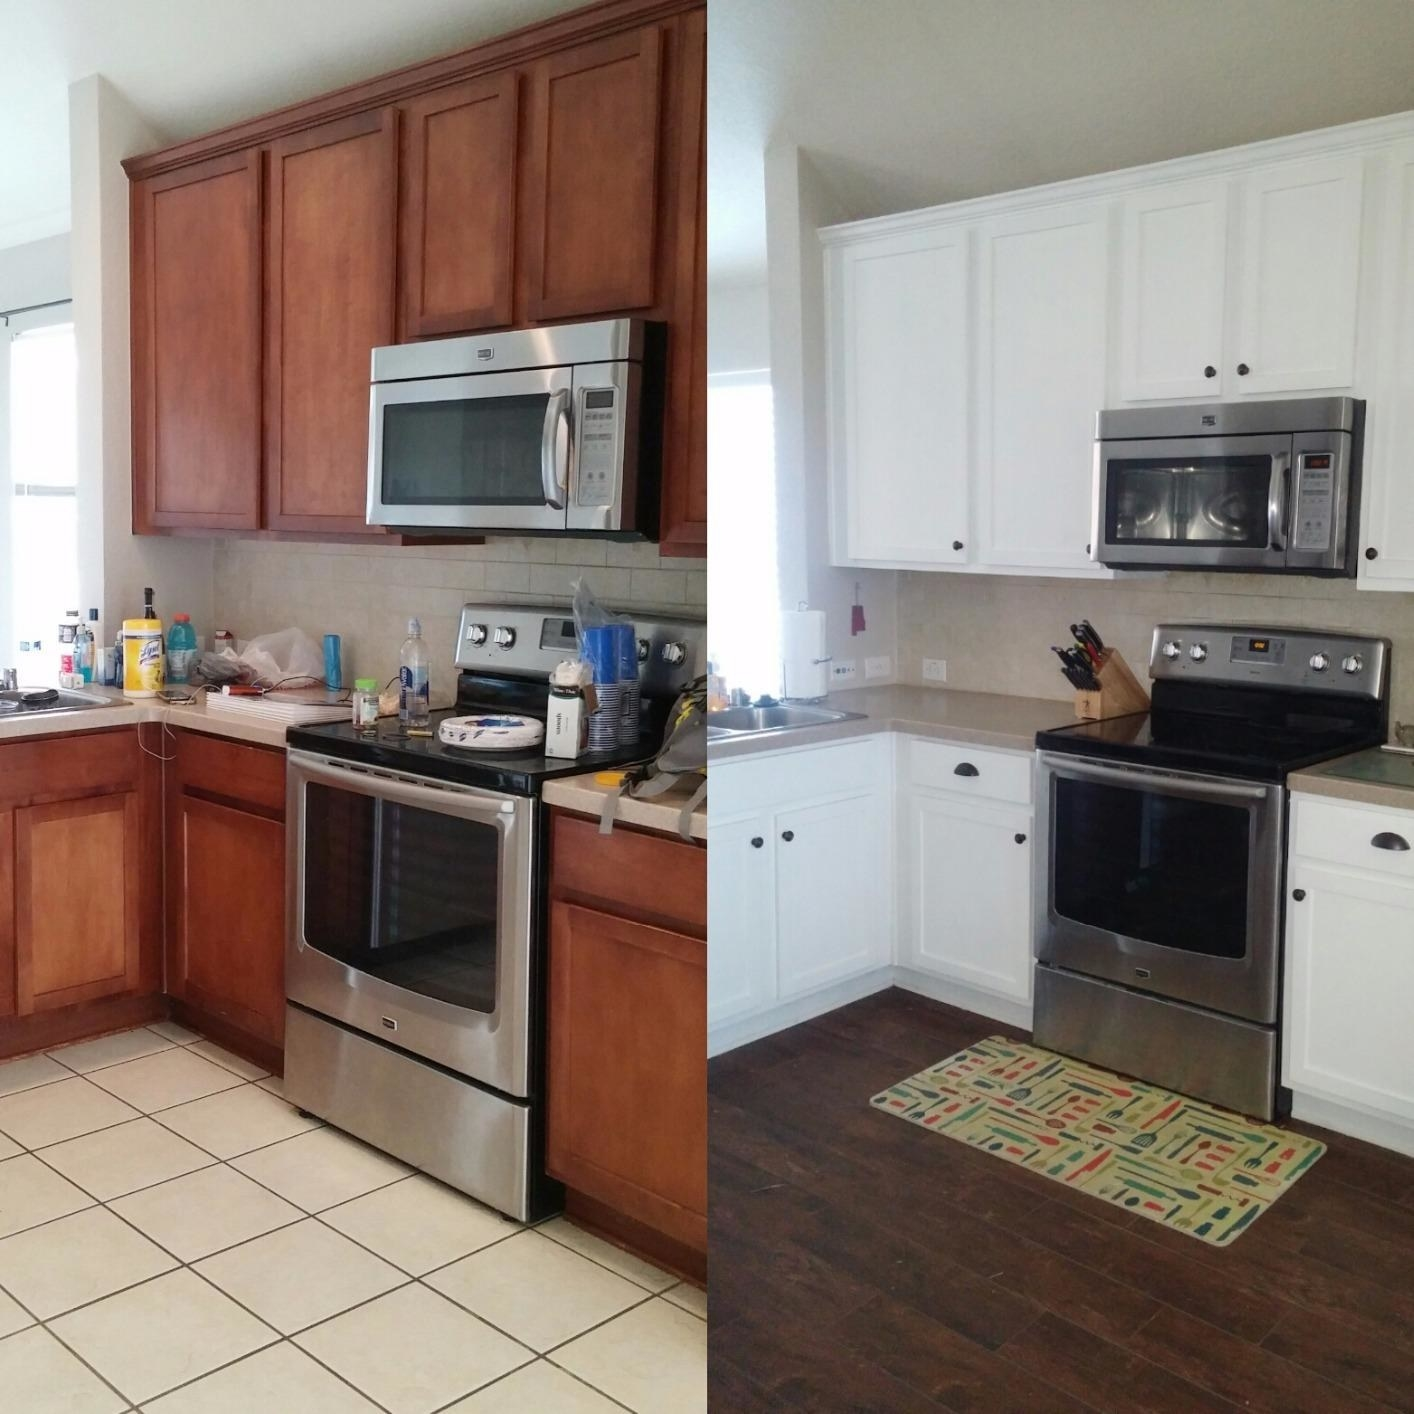 reviewer before and after pictures: before their cabinets are yellow oak and after they are pure white